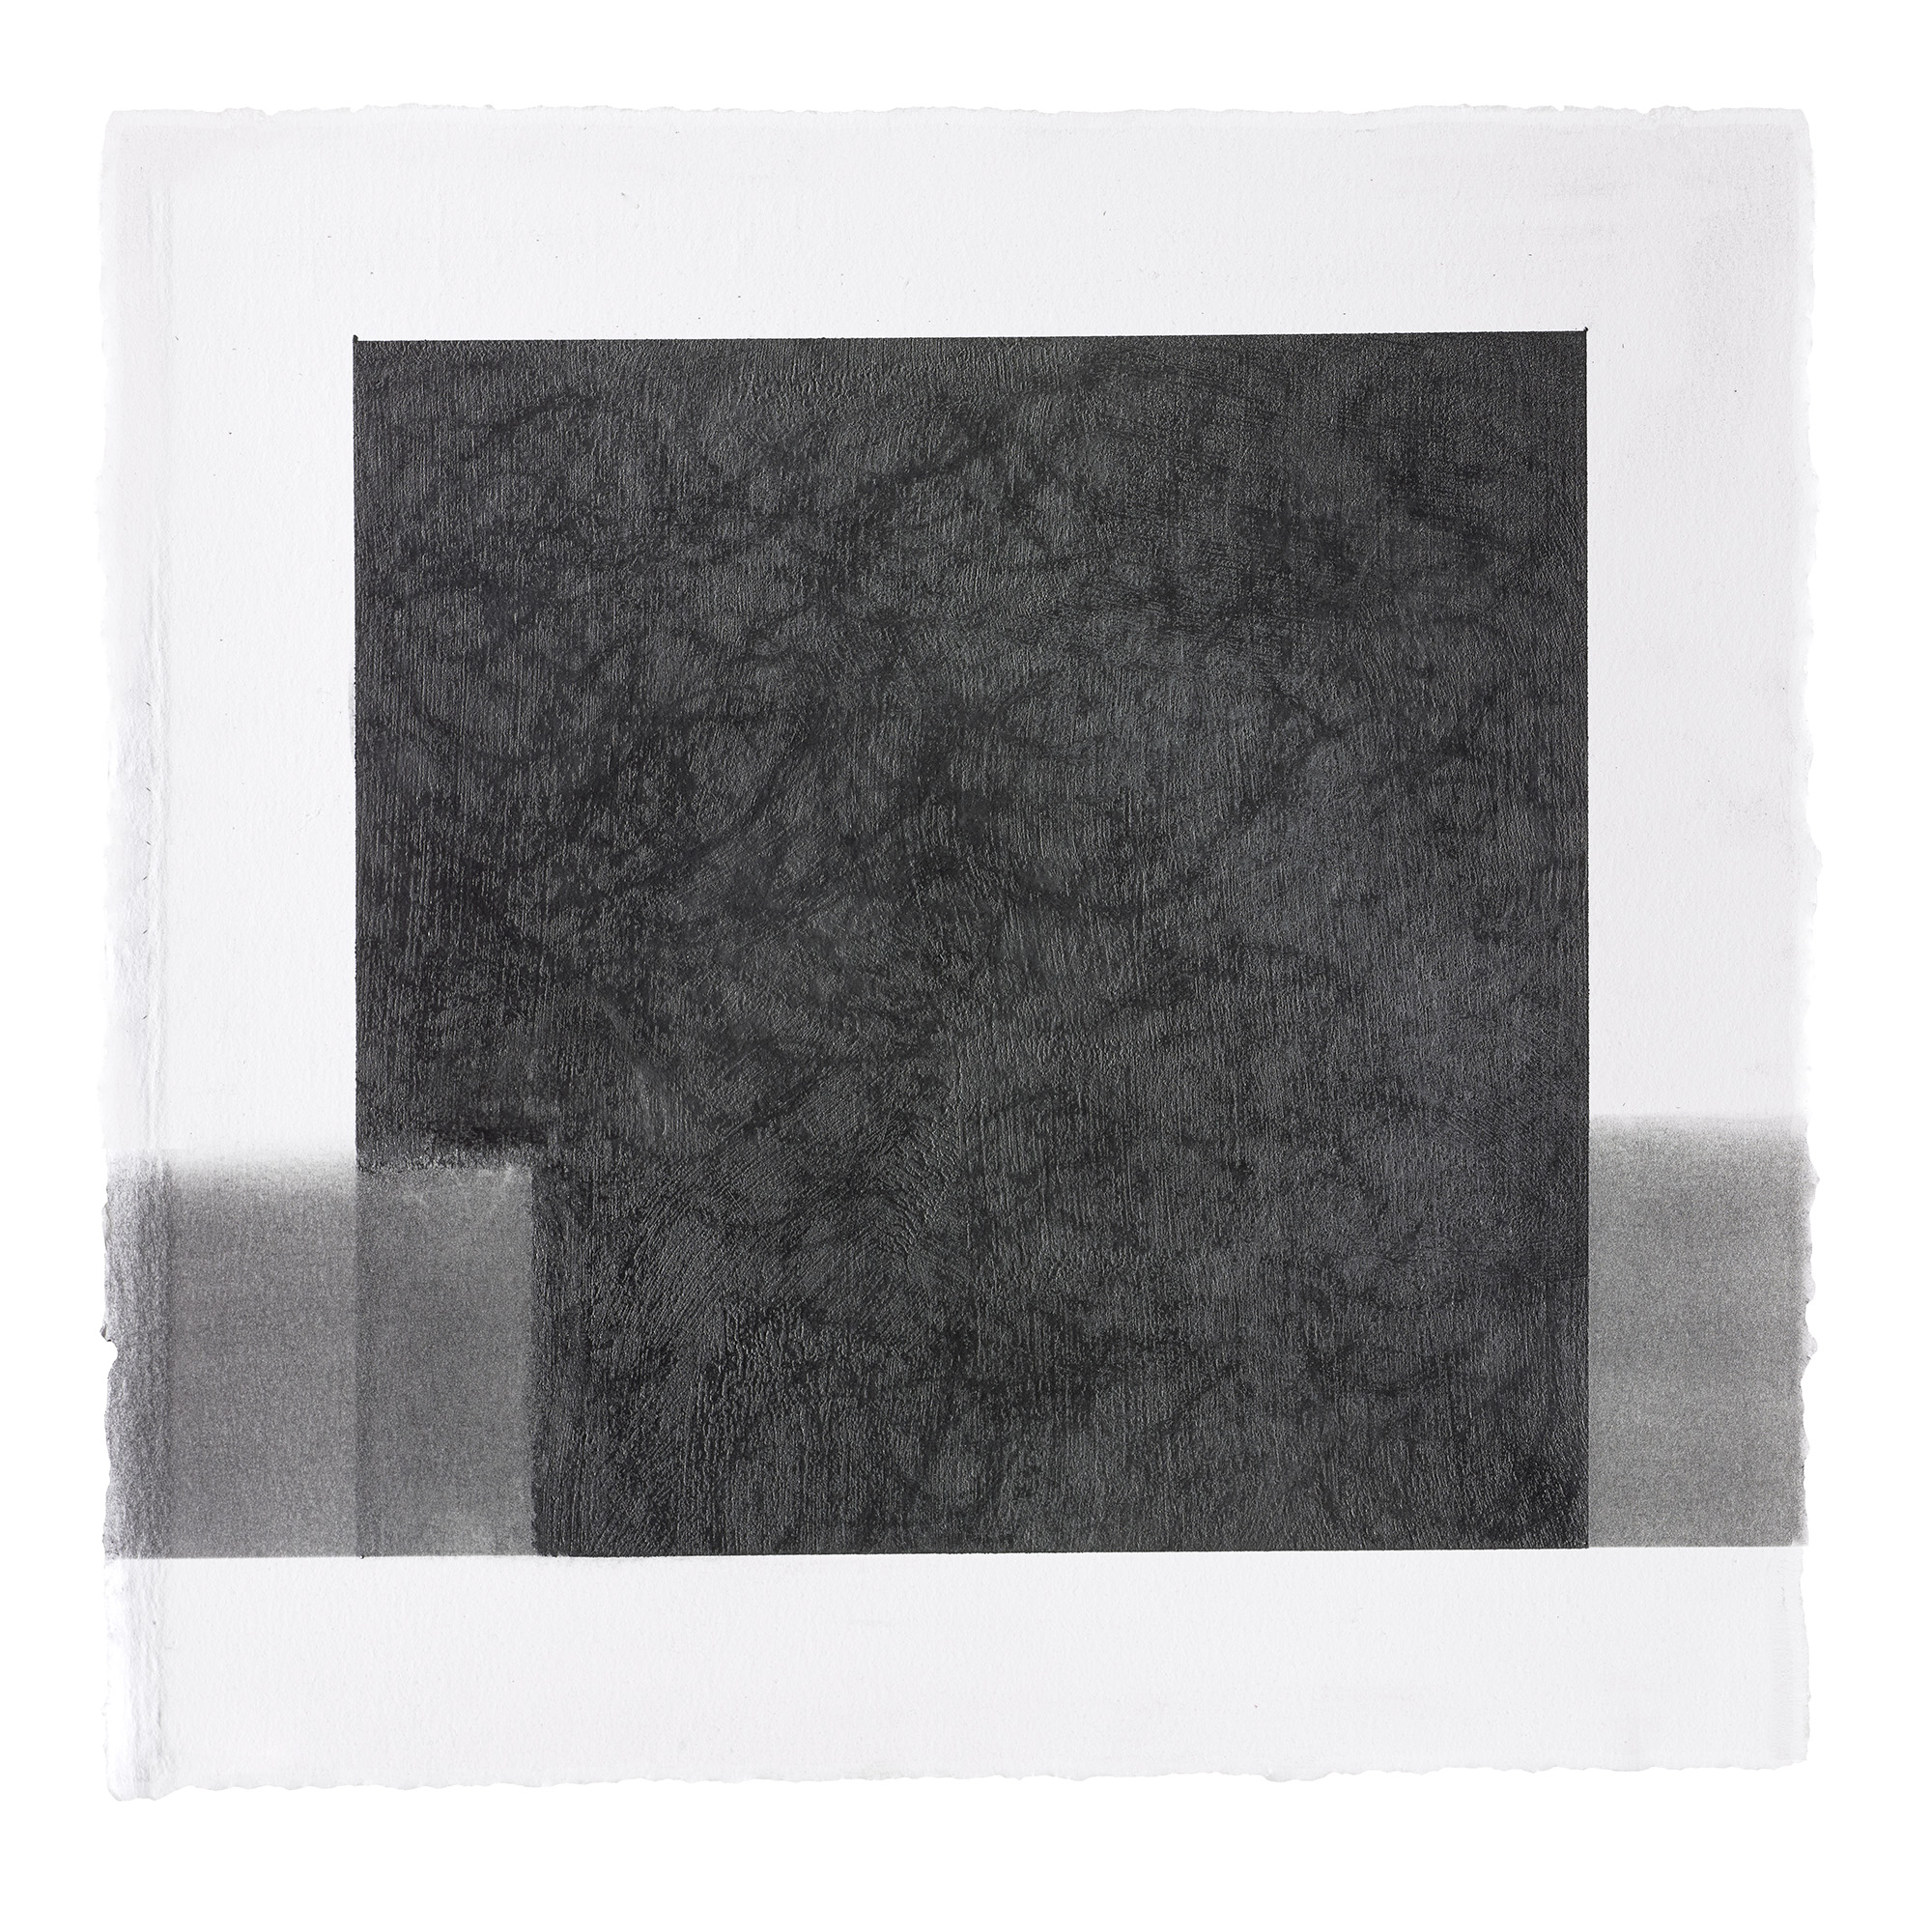 """ML24 peach pit soot and graphite on paper, 10.5"""" by 10.5"""", 2015"""